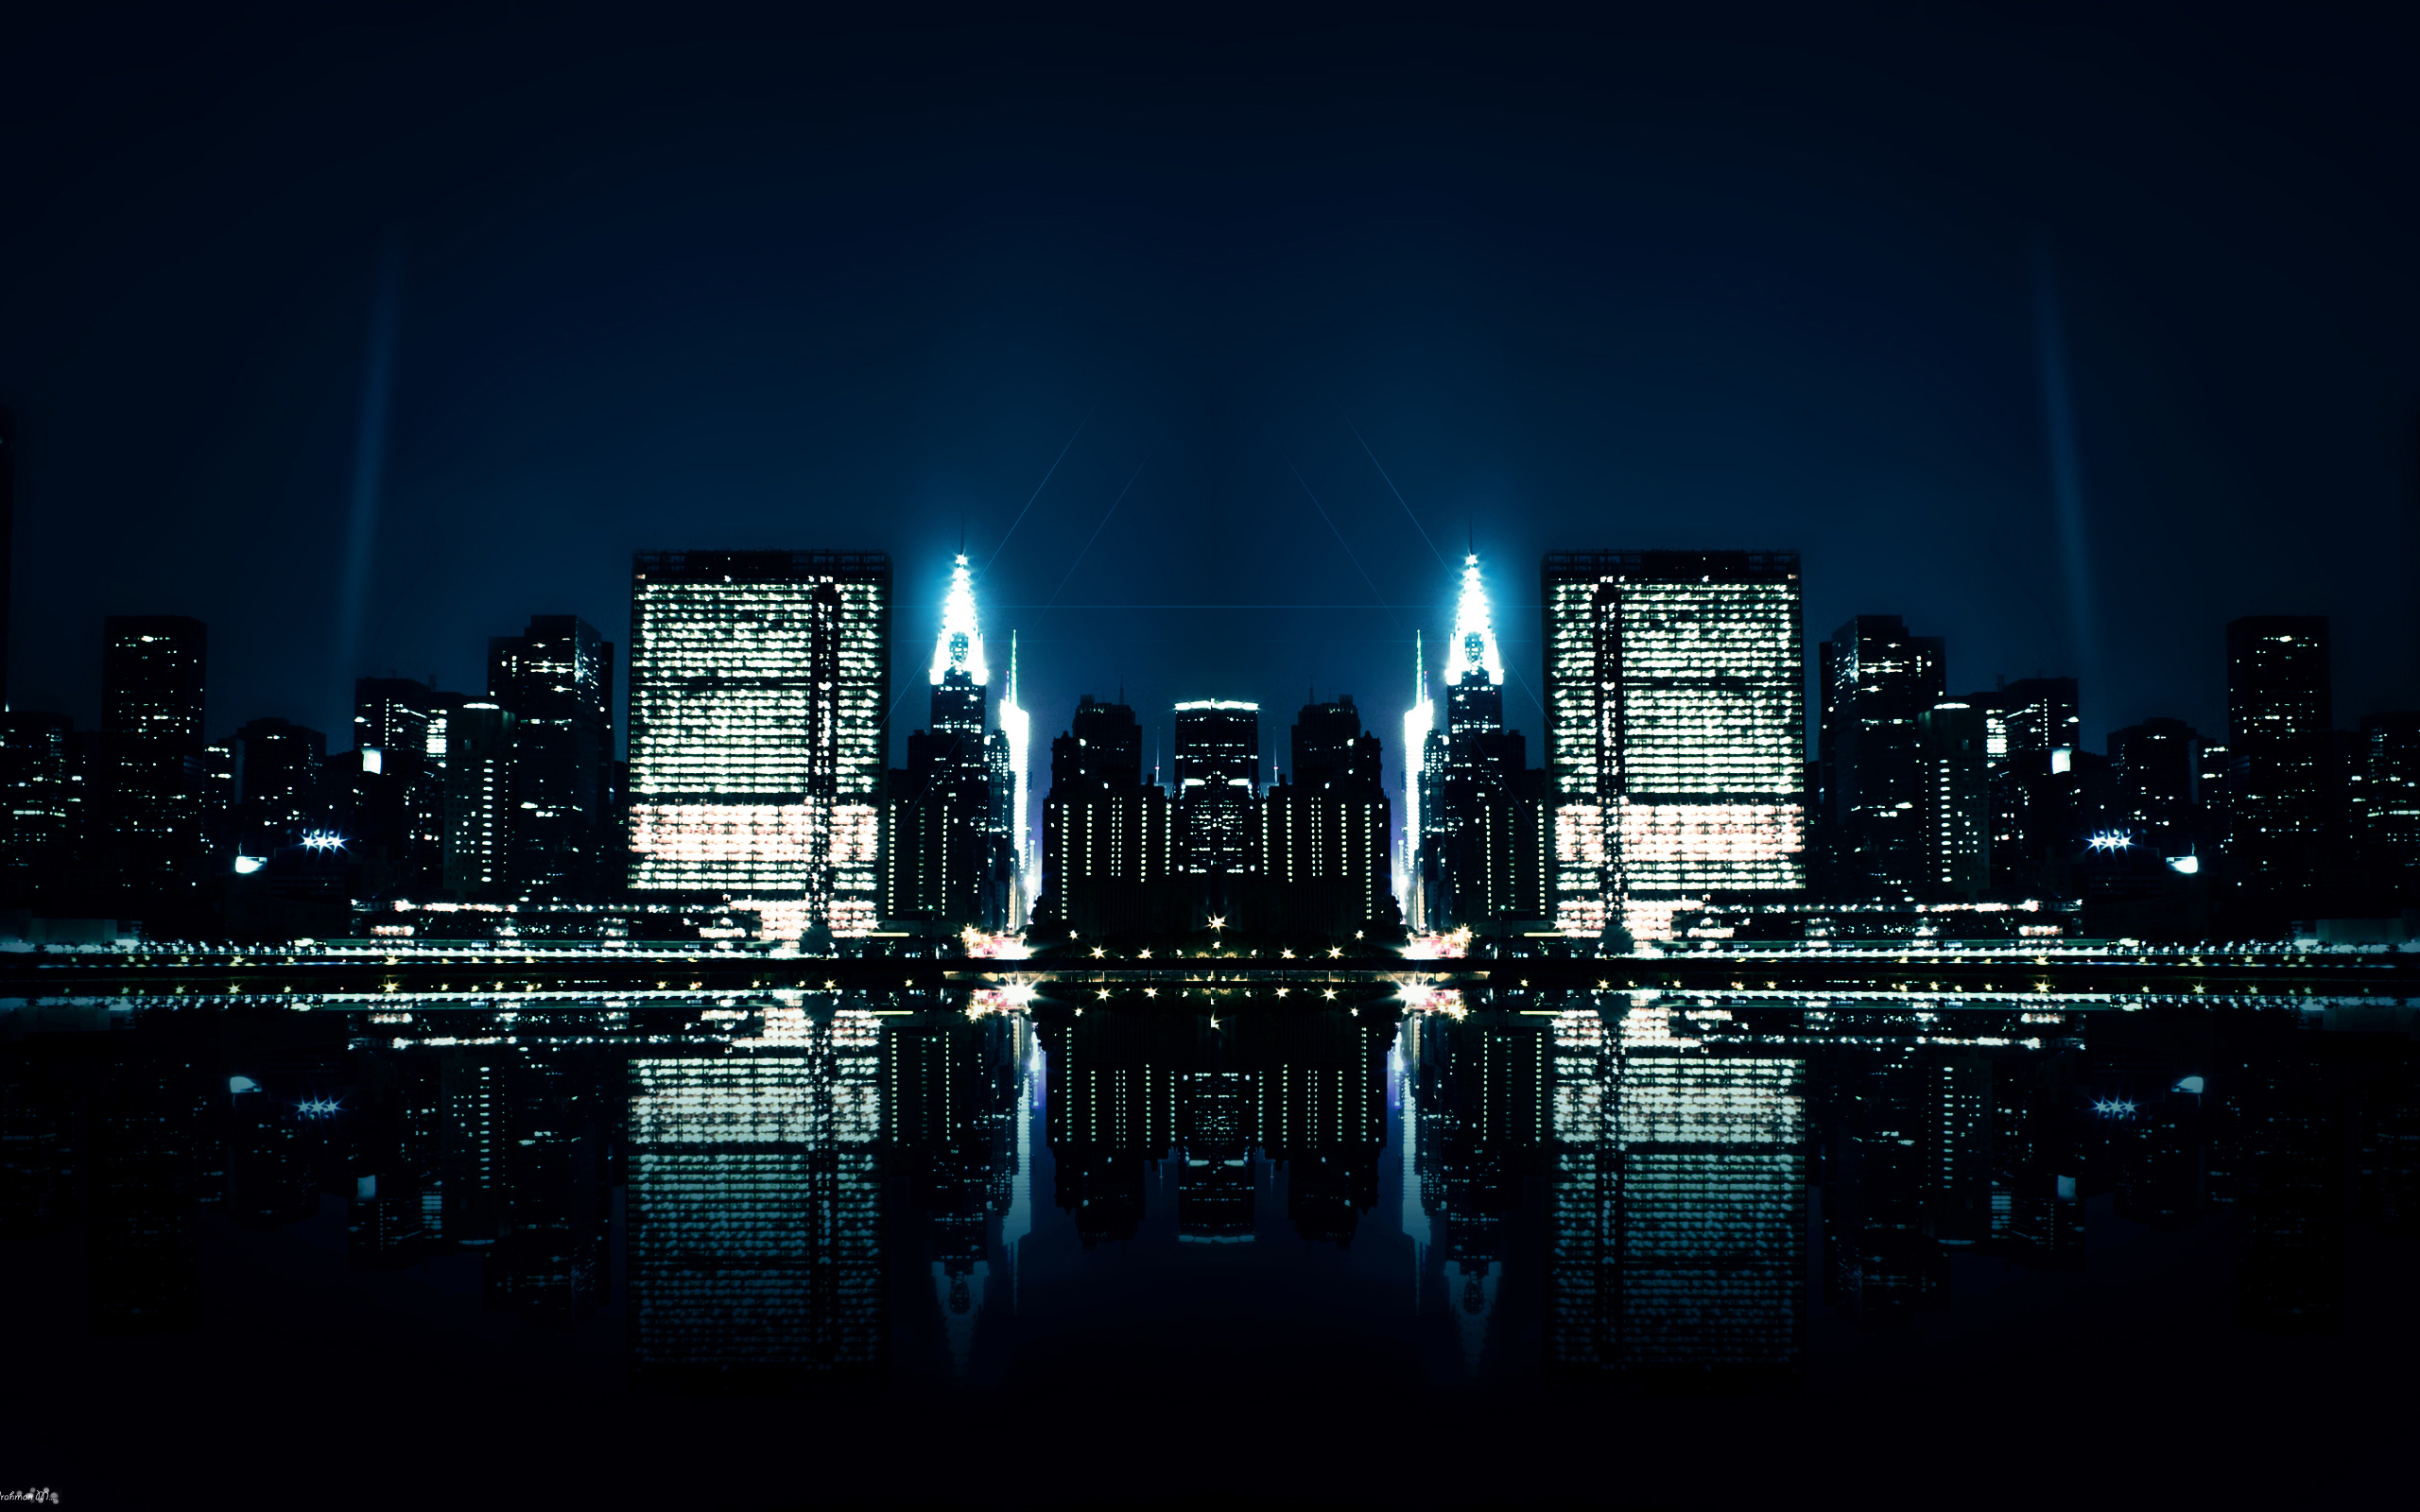 Hd wallpaper night - City Night Reflections Wallpapers Hd Wallpapers